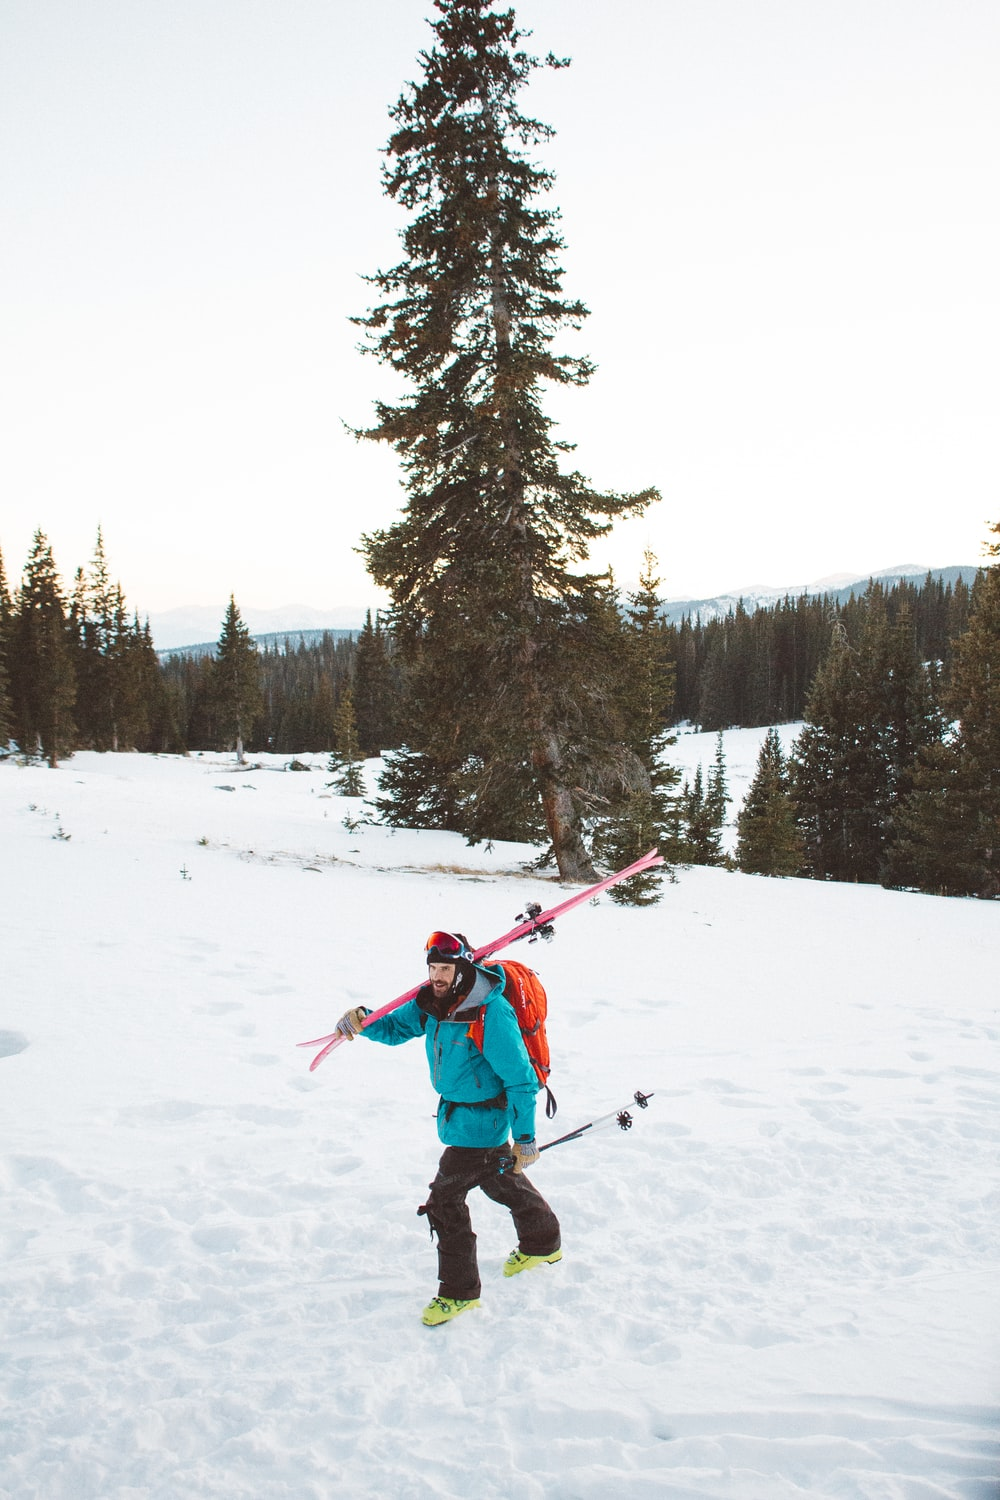 black carrying skis on snow